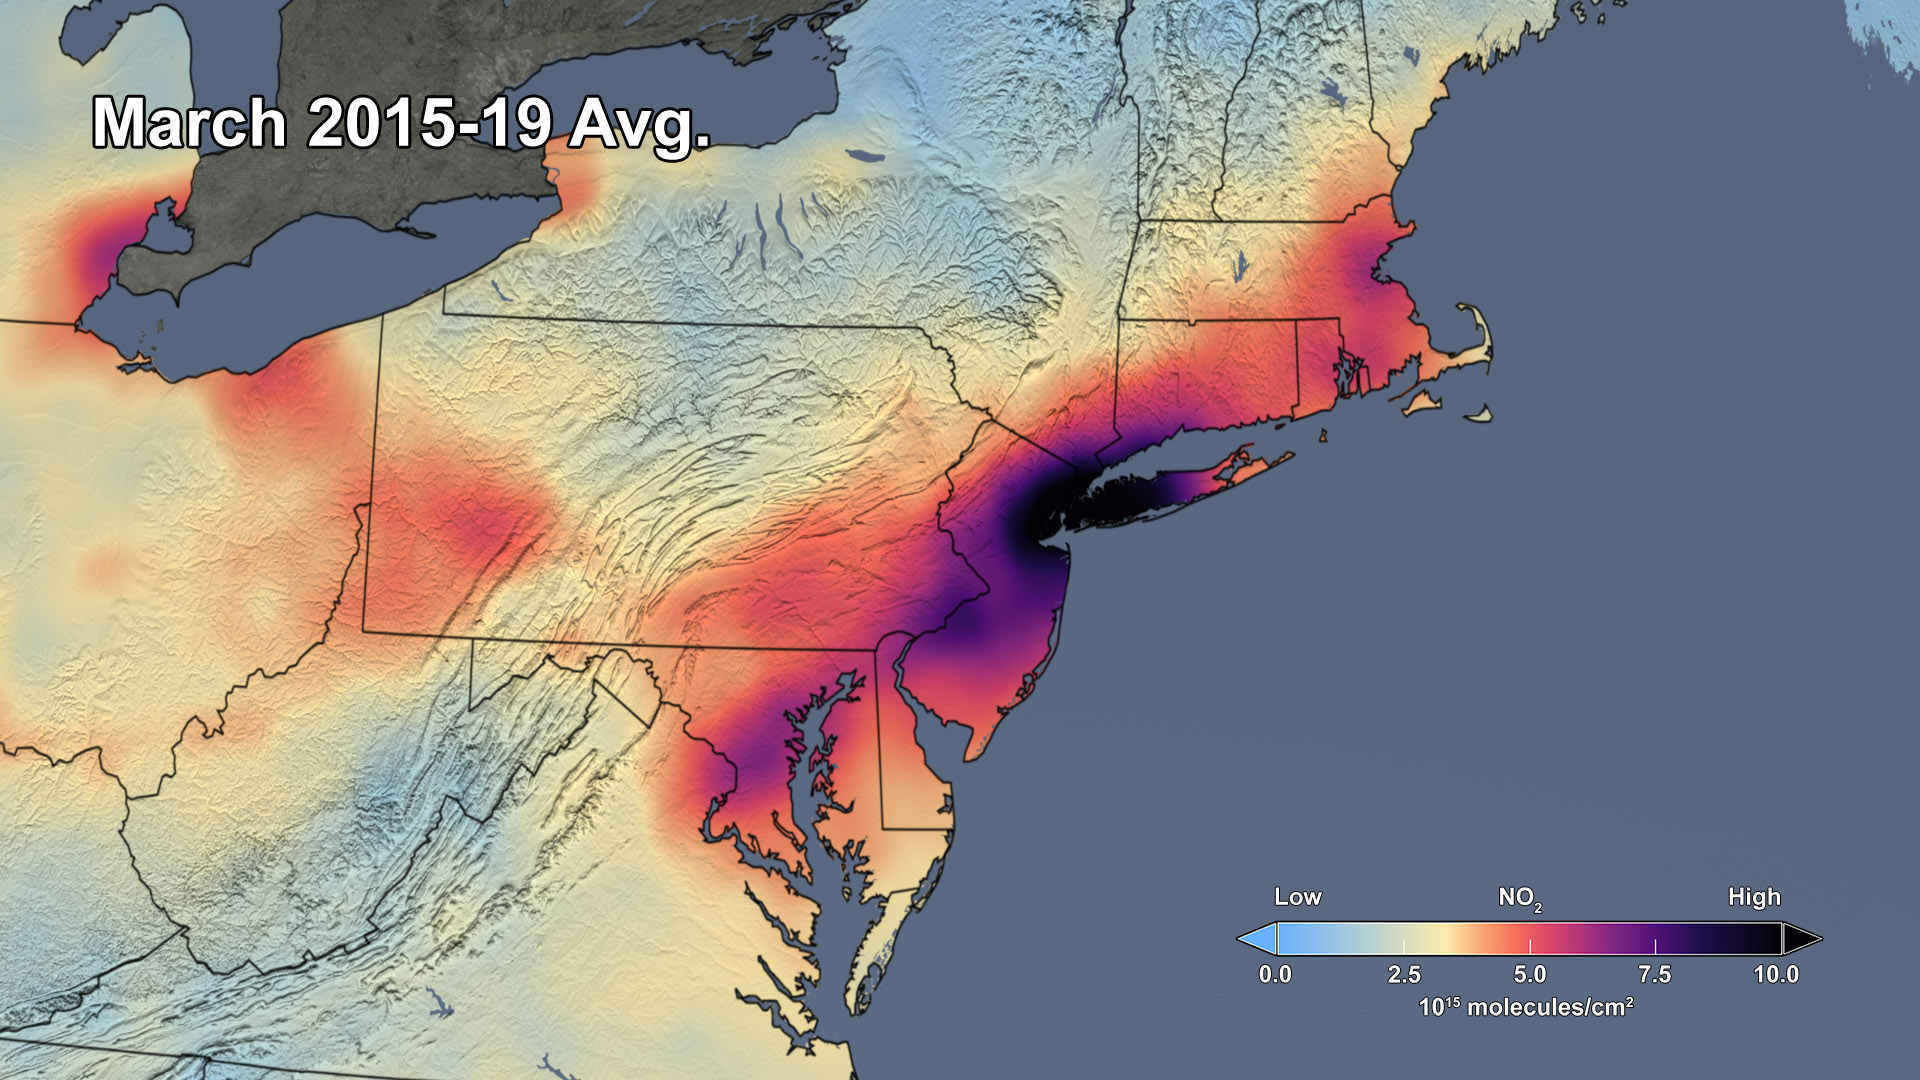 2015-2019 Average NO2 for the Northeast US